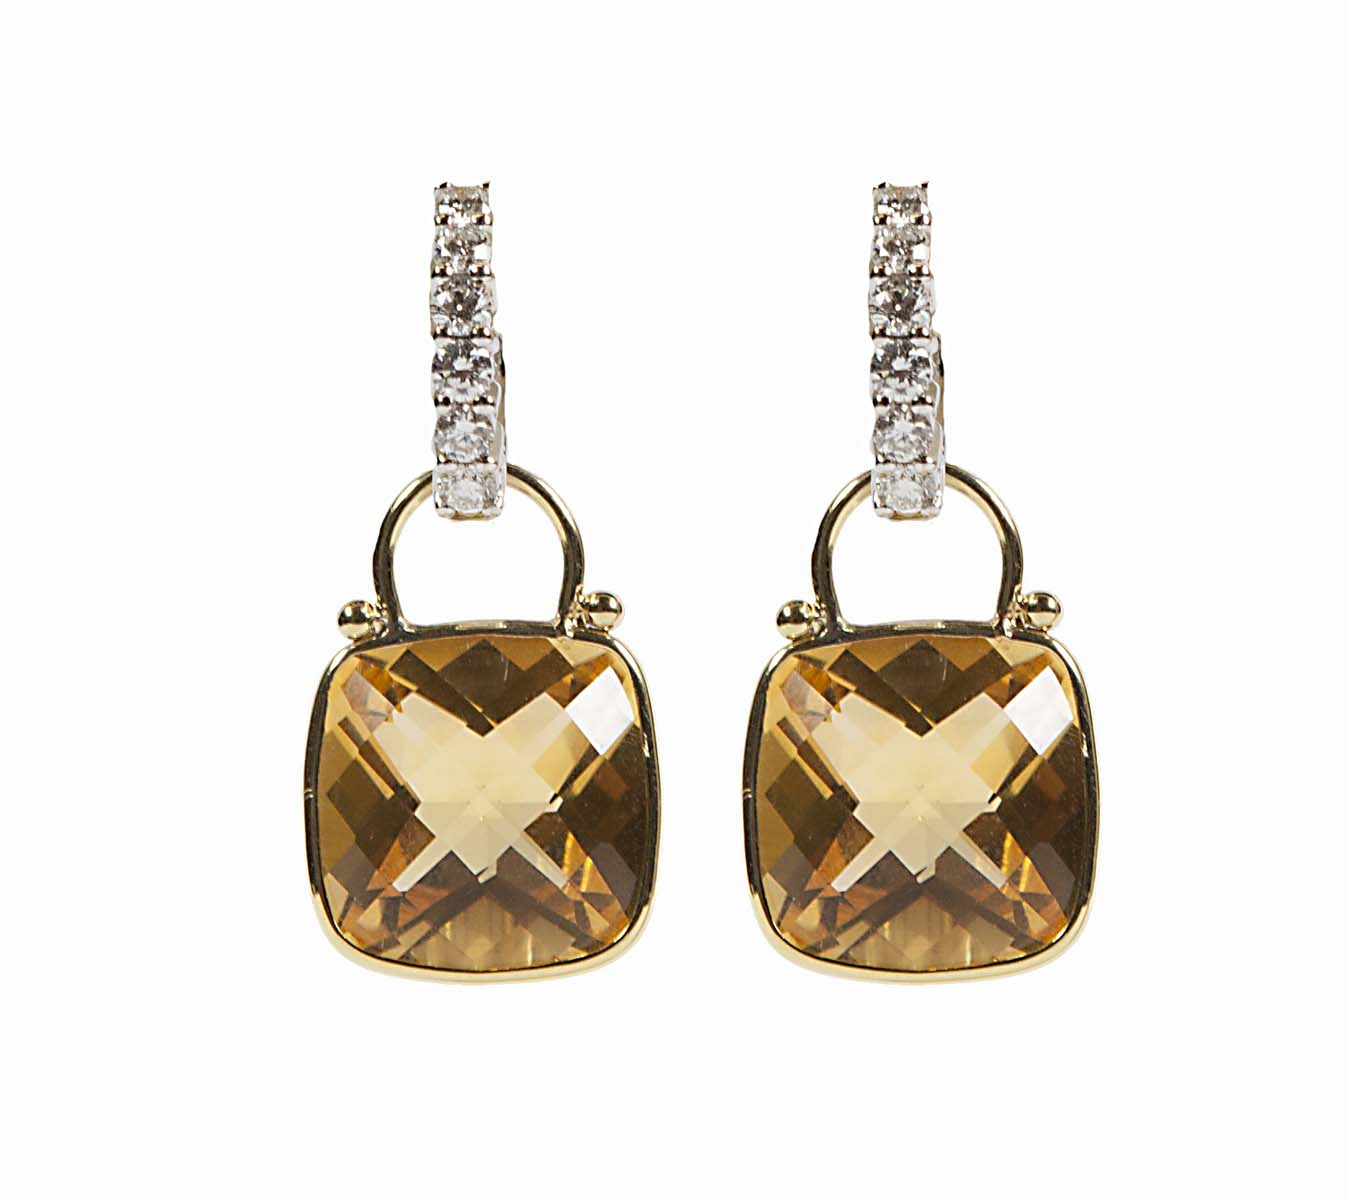 18 k diamond Huggies with Citrine Enhancers (sold separately)